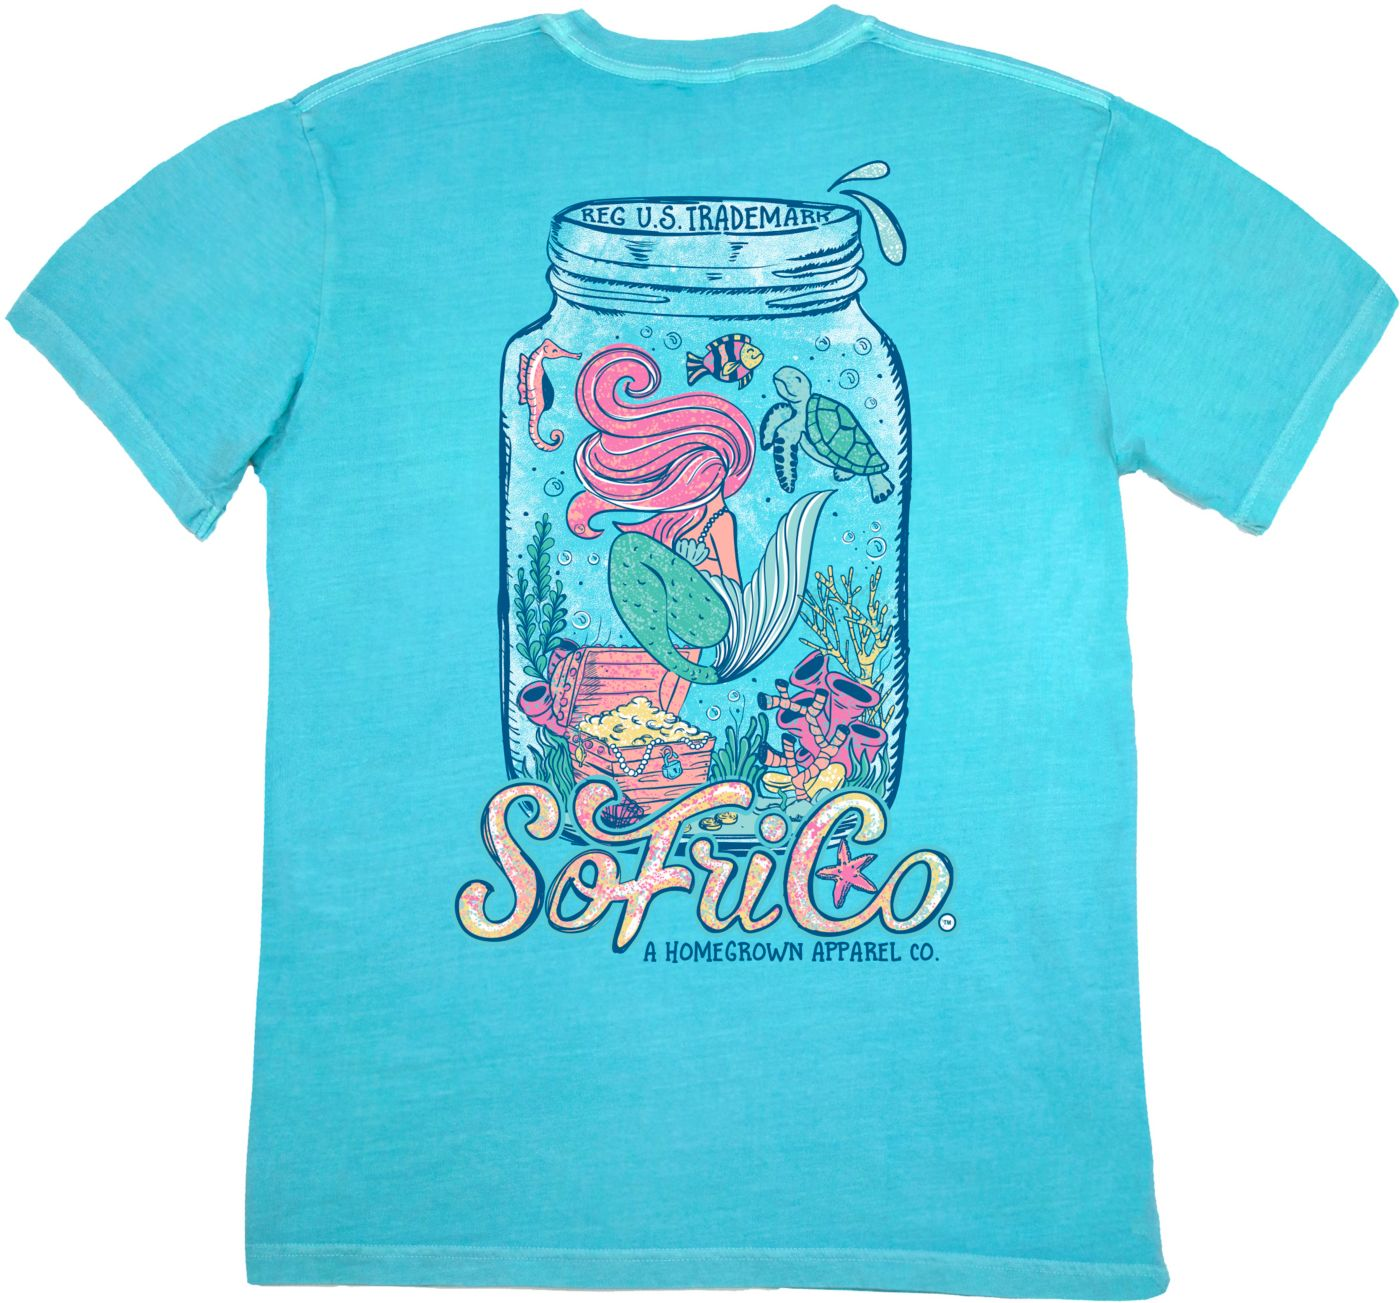 Southern Fried Cotton Women's Mermaid For The Sea T-Shirt